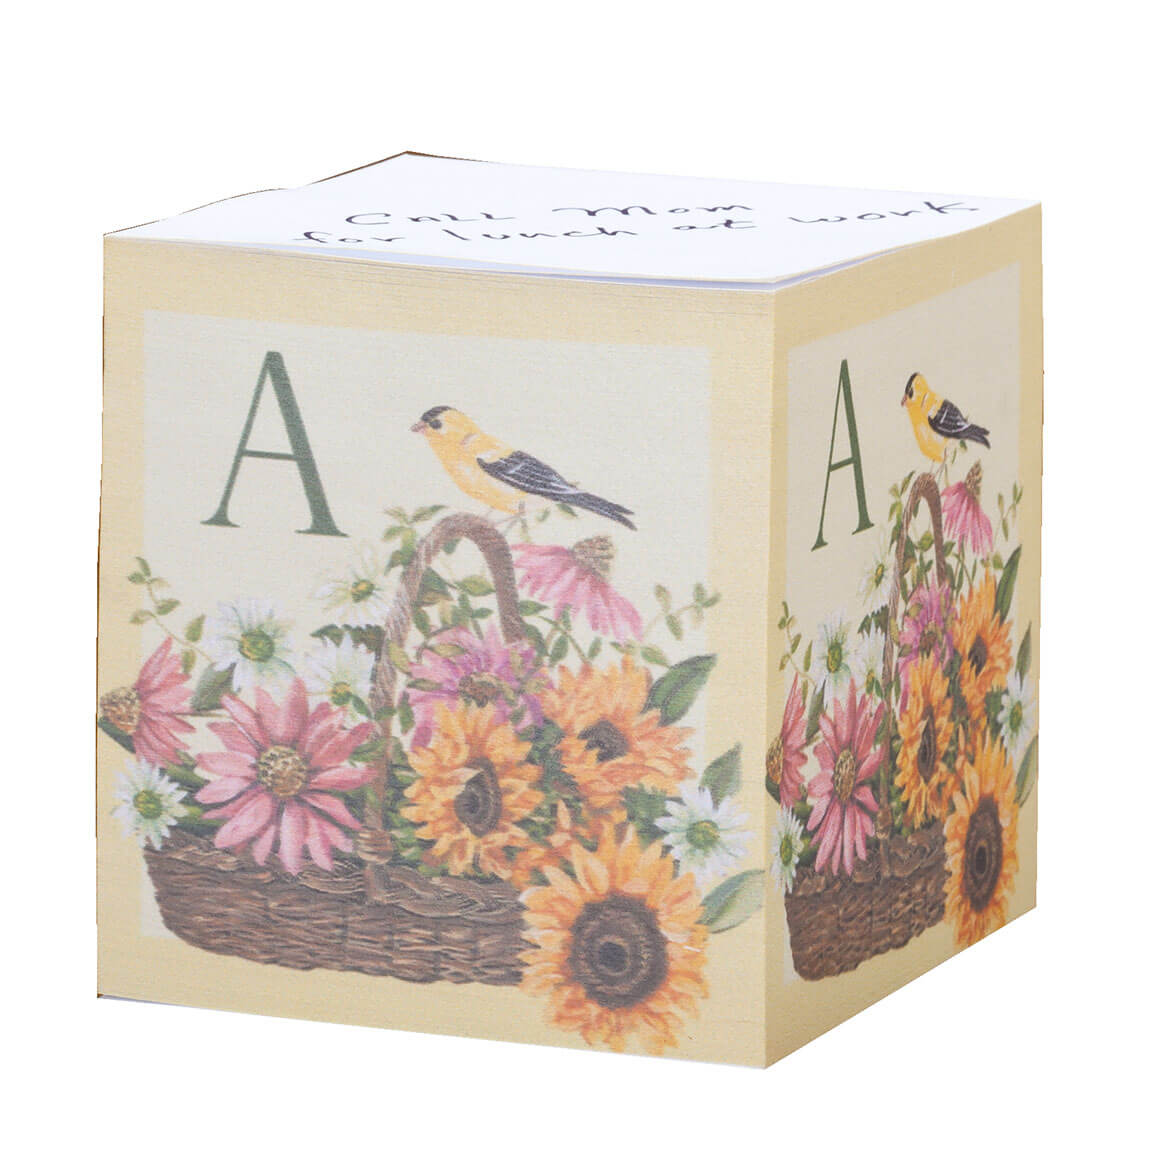 Personalized Finch Self Stick Note Cube